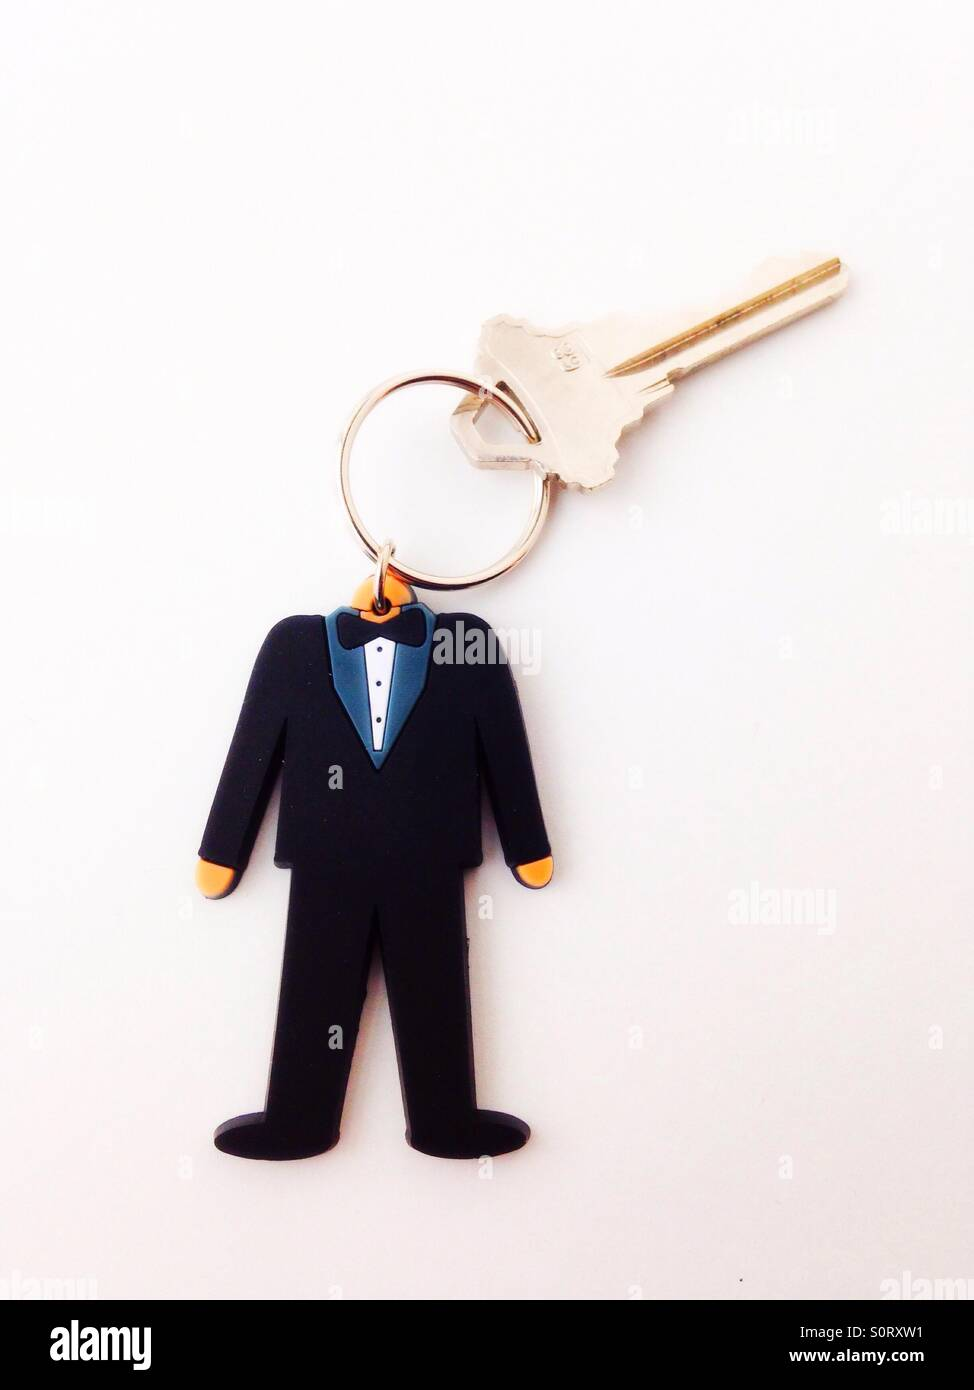 A key ring of a man in a tuxedo. - Stock Image